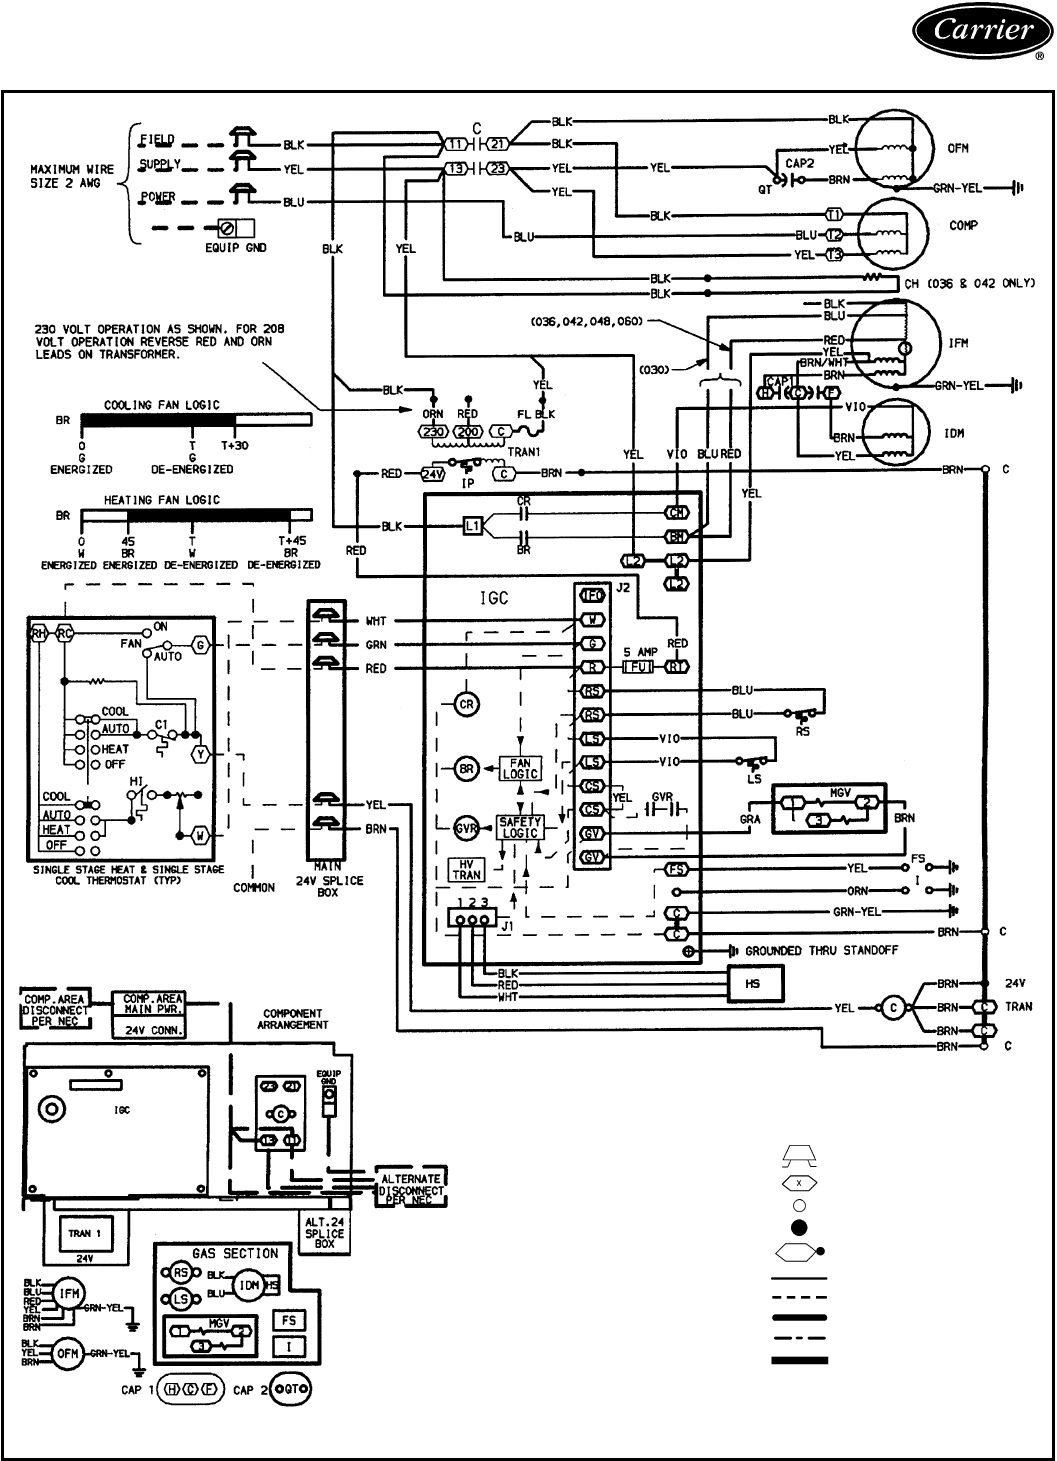 hight resolution of carrier ac wiring diagram carrier furnace wiring diagram collection rooftop unit wiring wiring diagram carrier